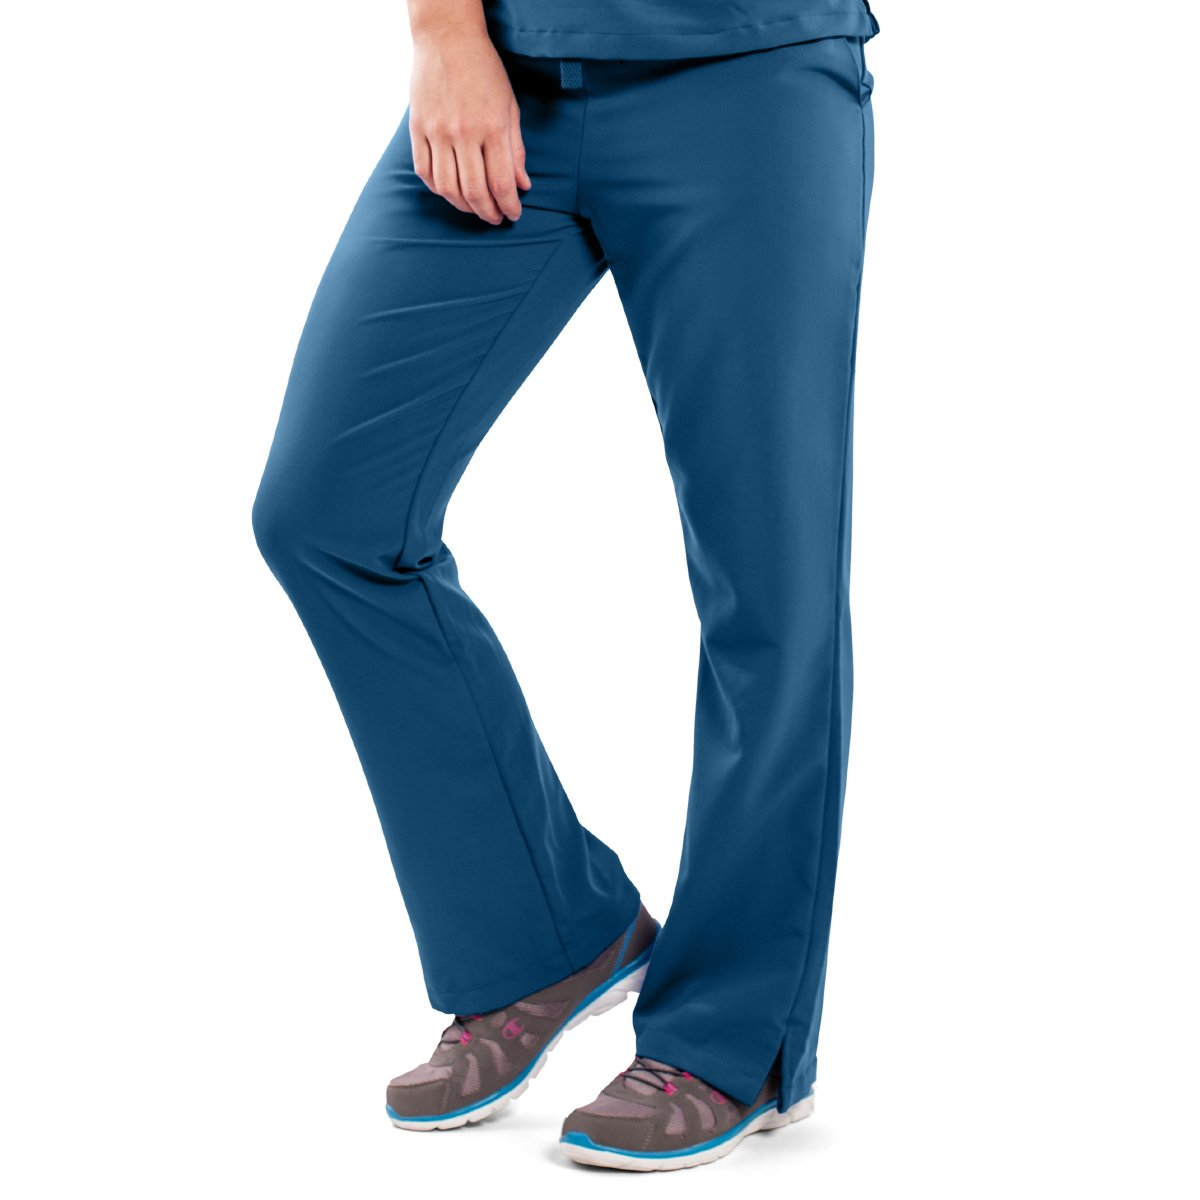 All stores are sold ave Women's Medical Scrub Style Pants Melrose Bootcut Be super welcome